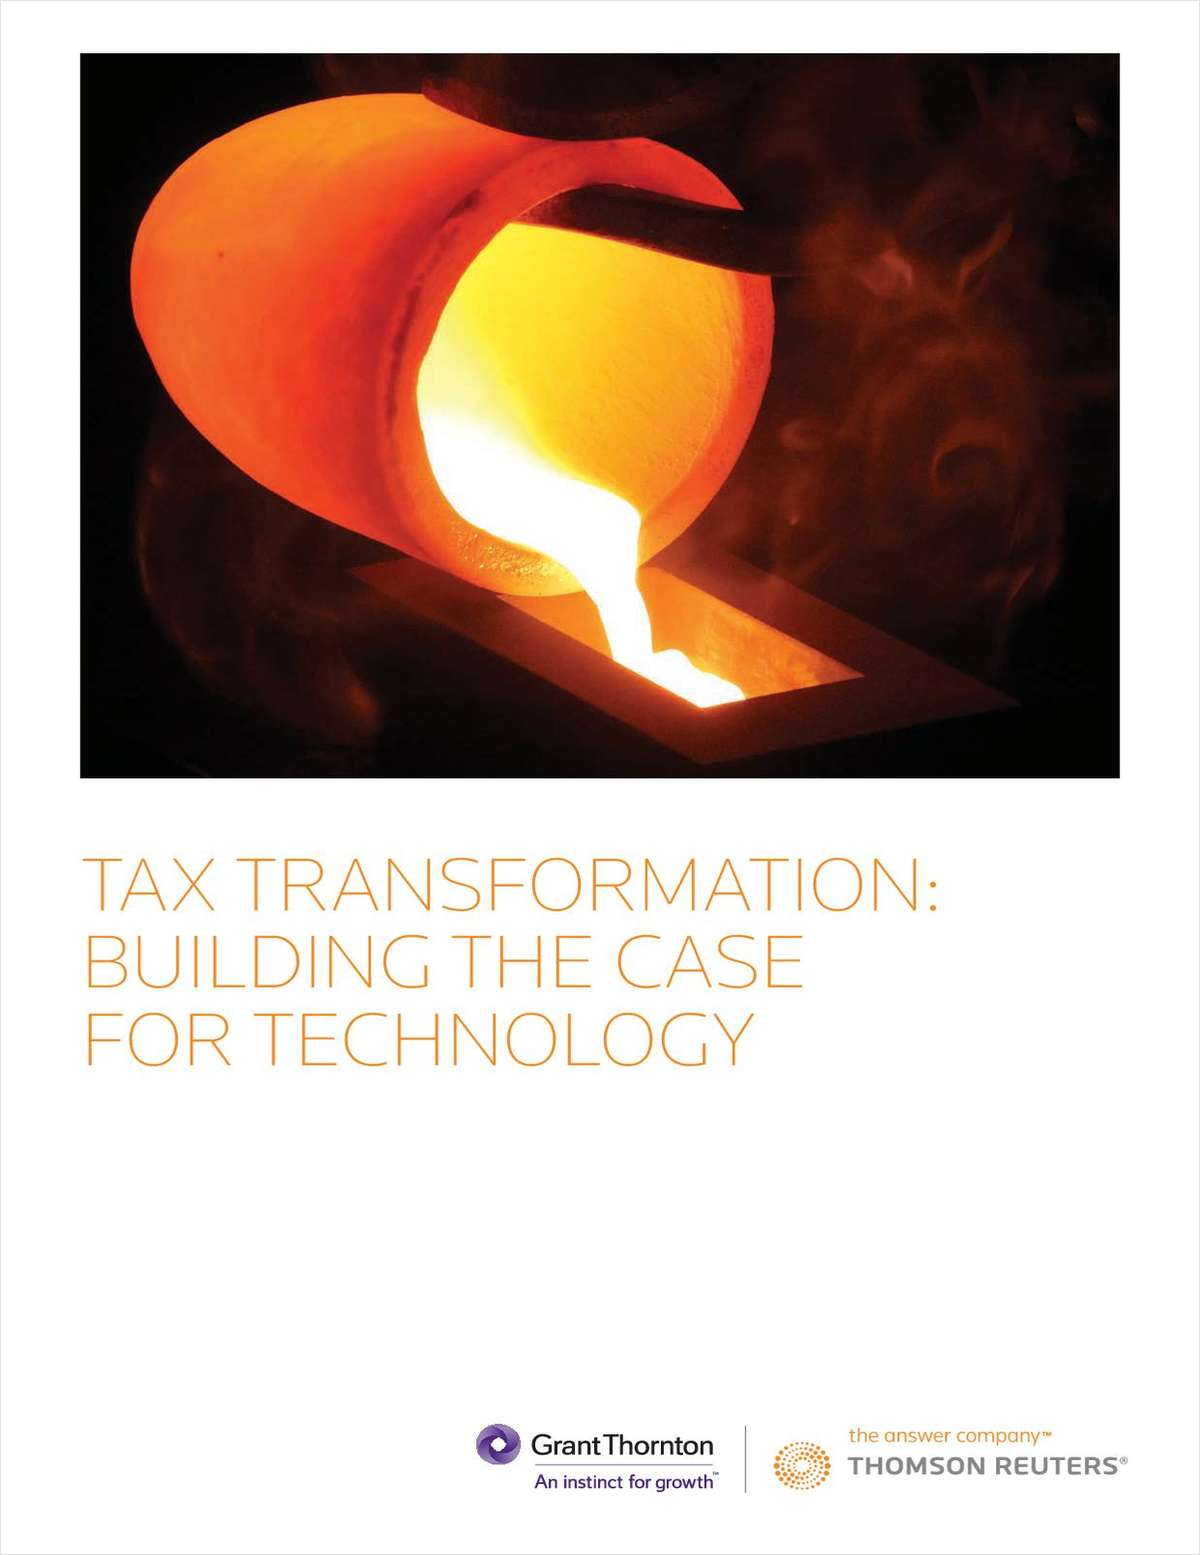 Tax Transformation: Building the Case for Technology